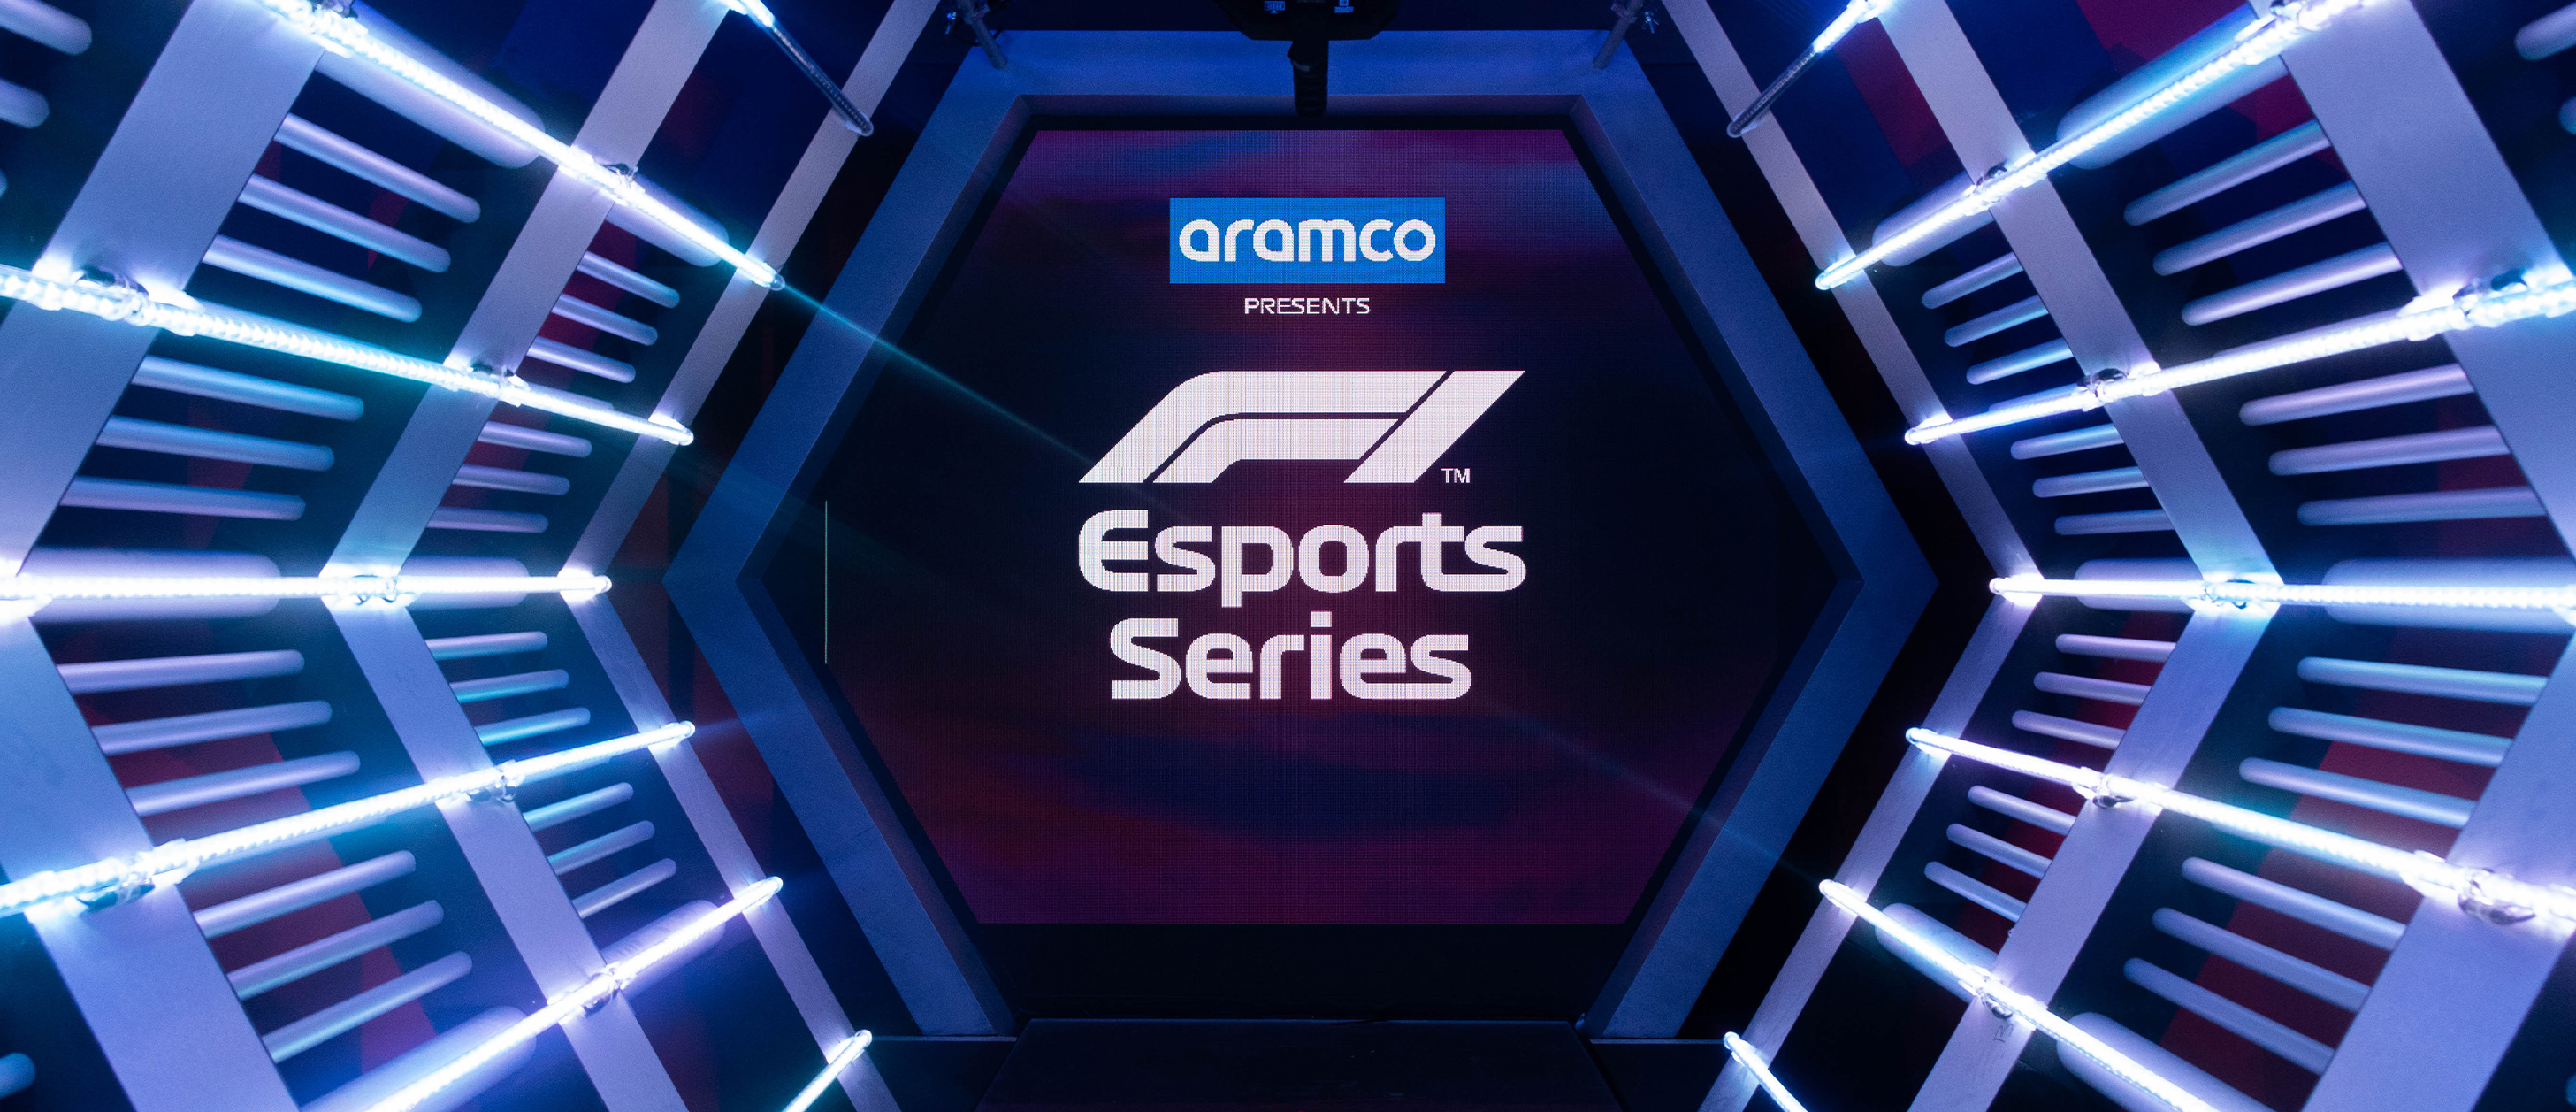 11 Drivers Selected in 2020 F1 Esports Pro Draft